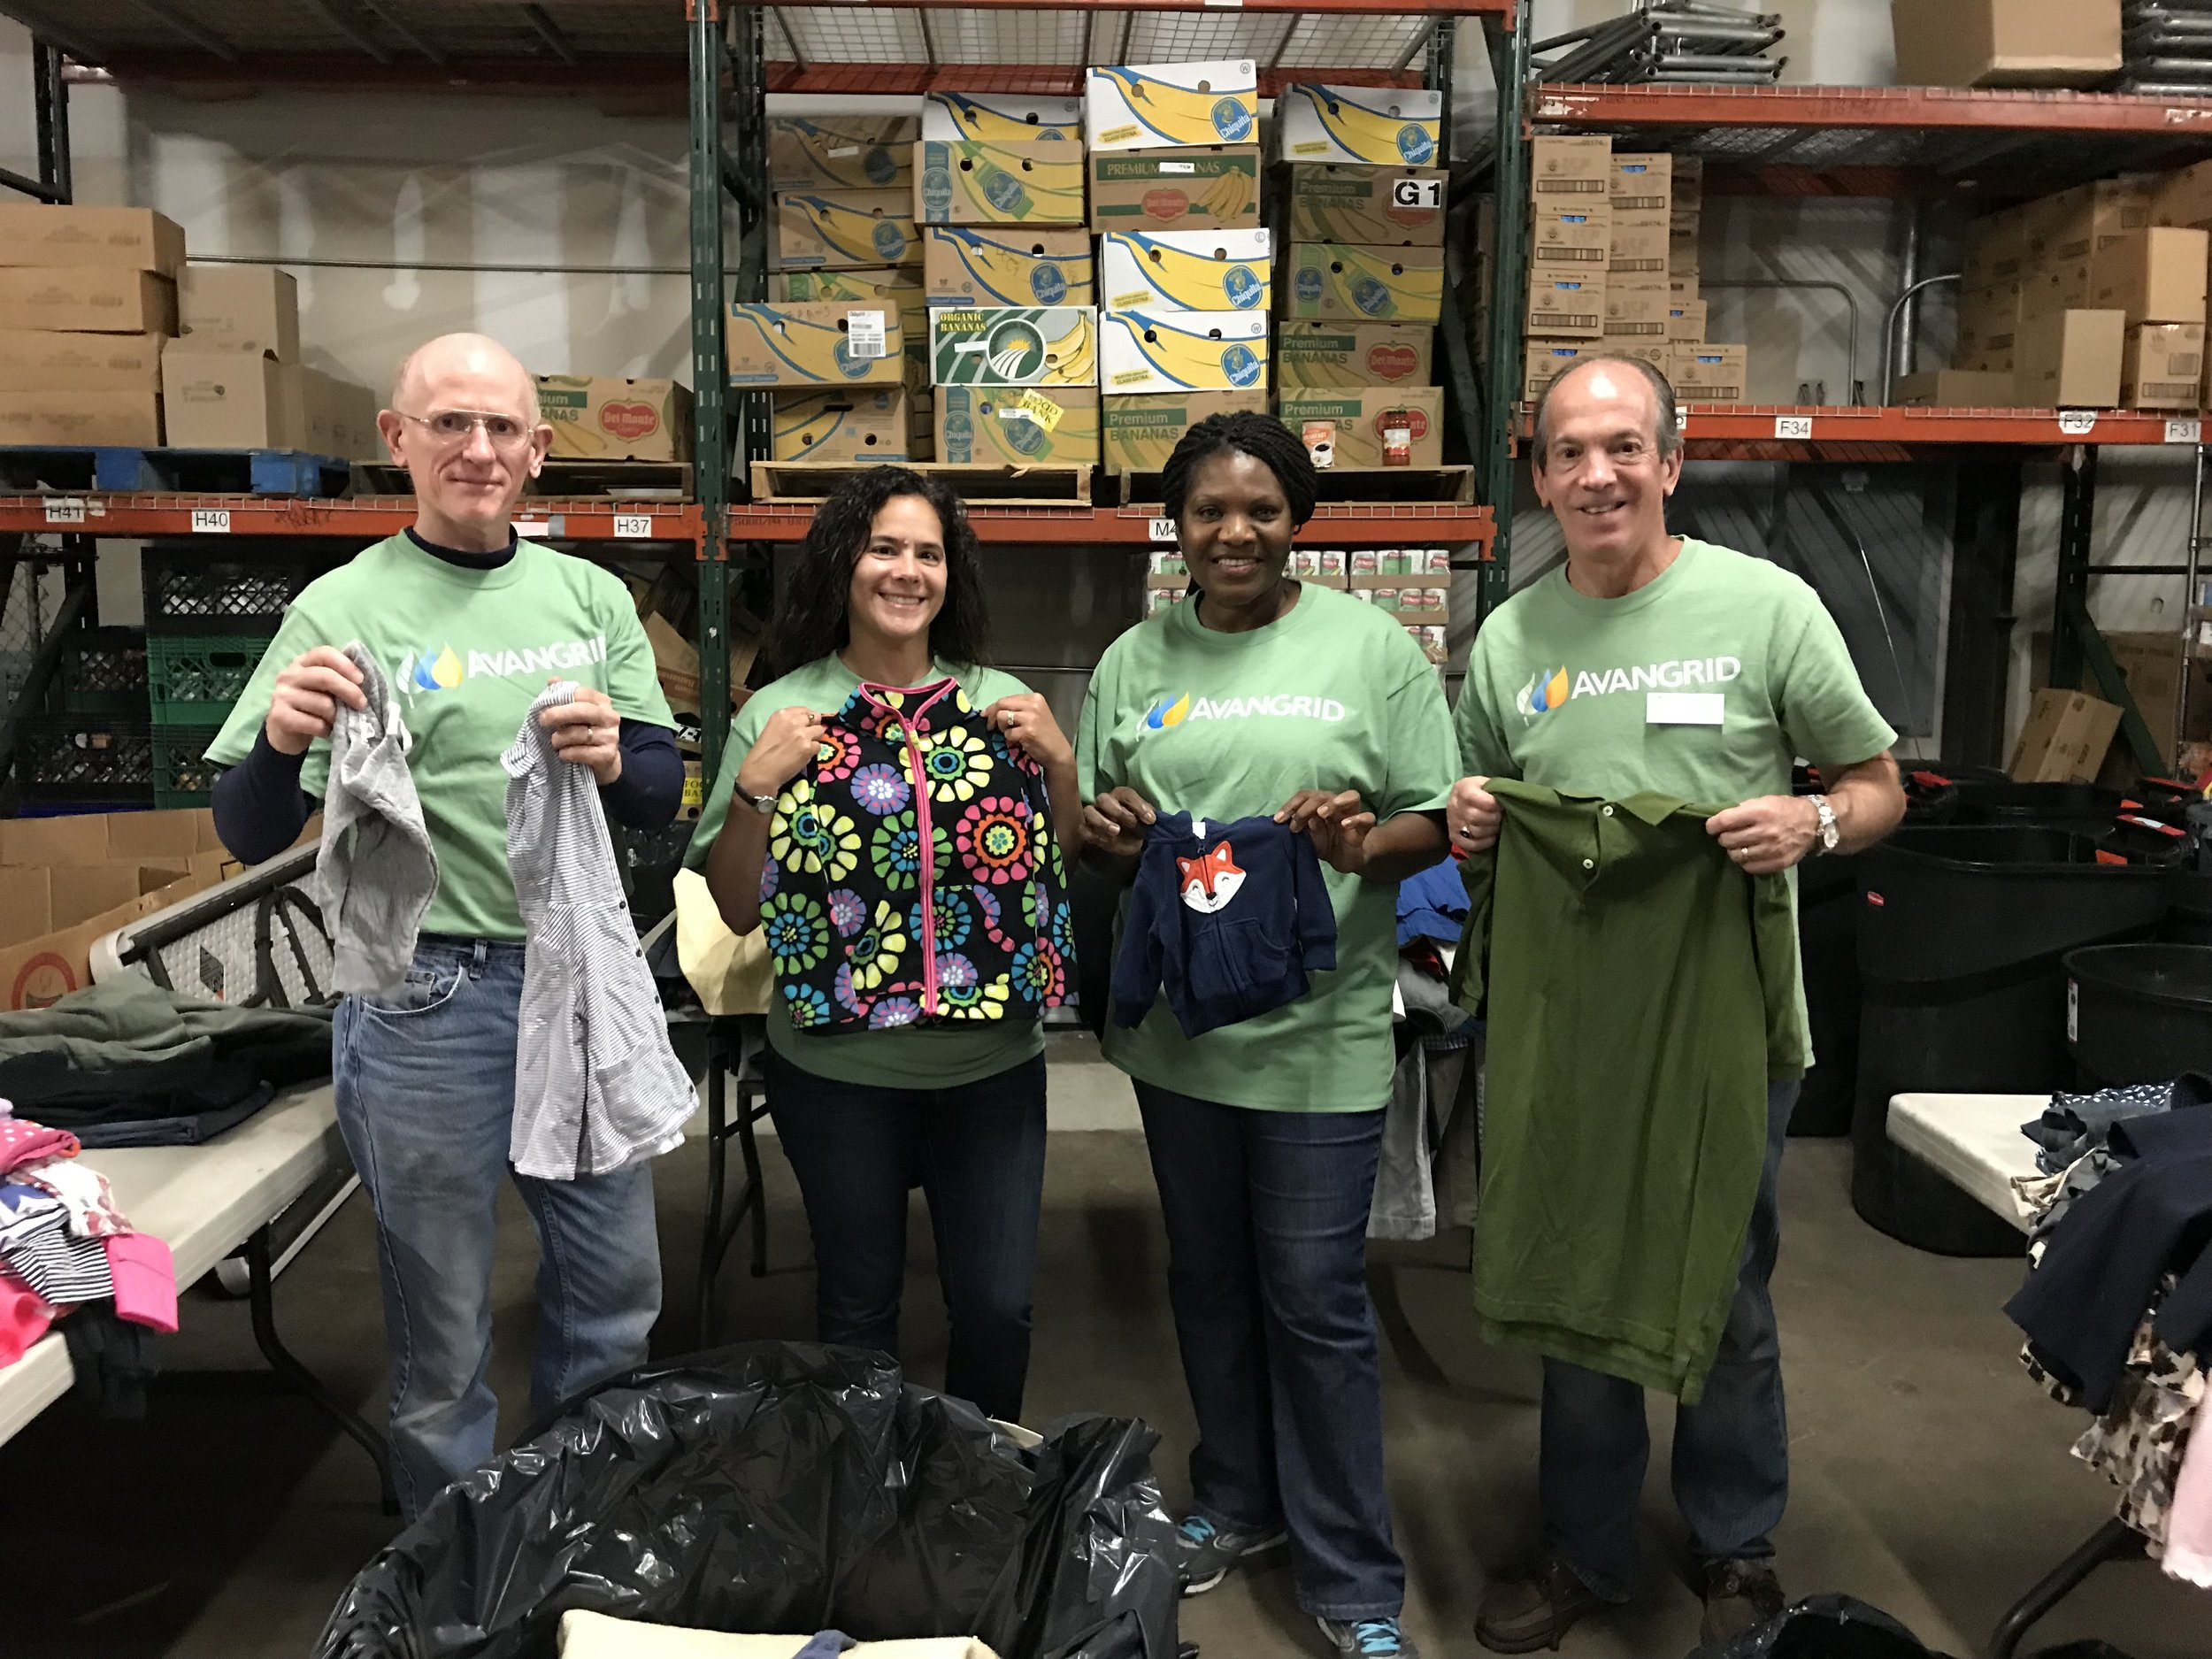 Sorting clothes at the Bridgeport Rescue Mission 9-29-2018.jpg